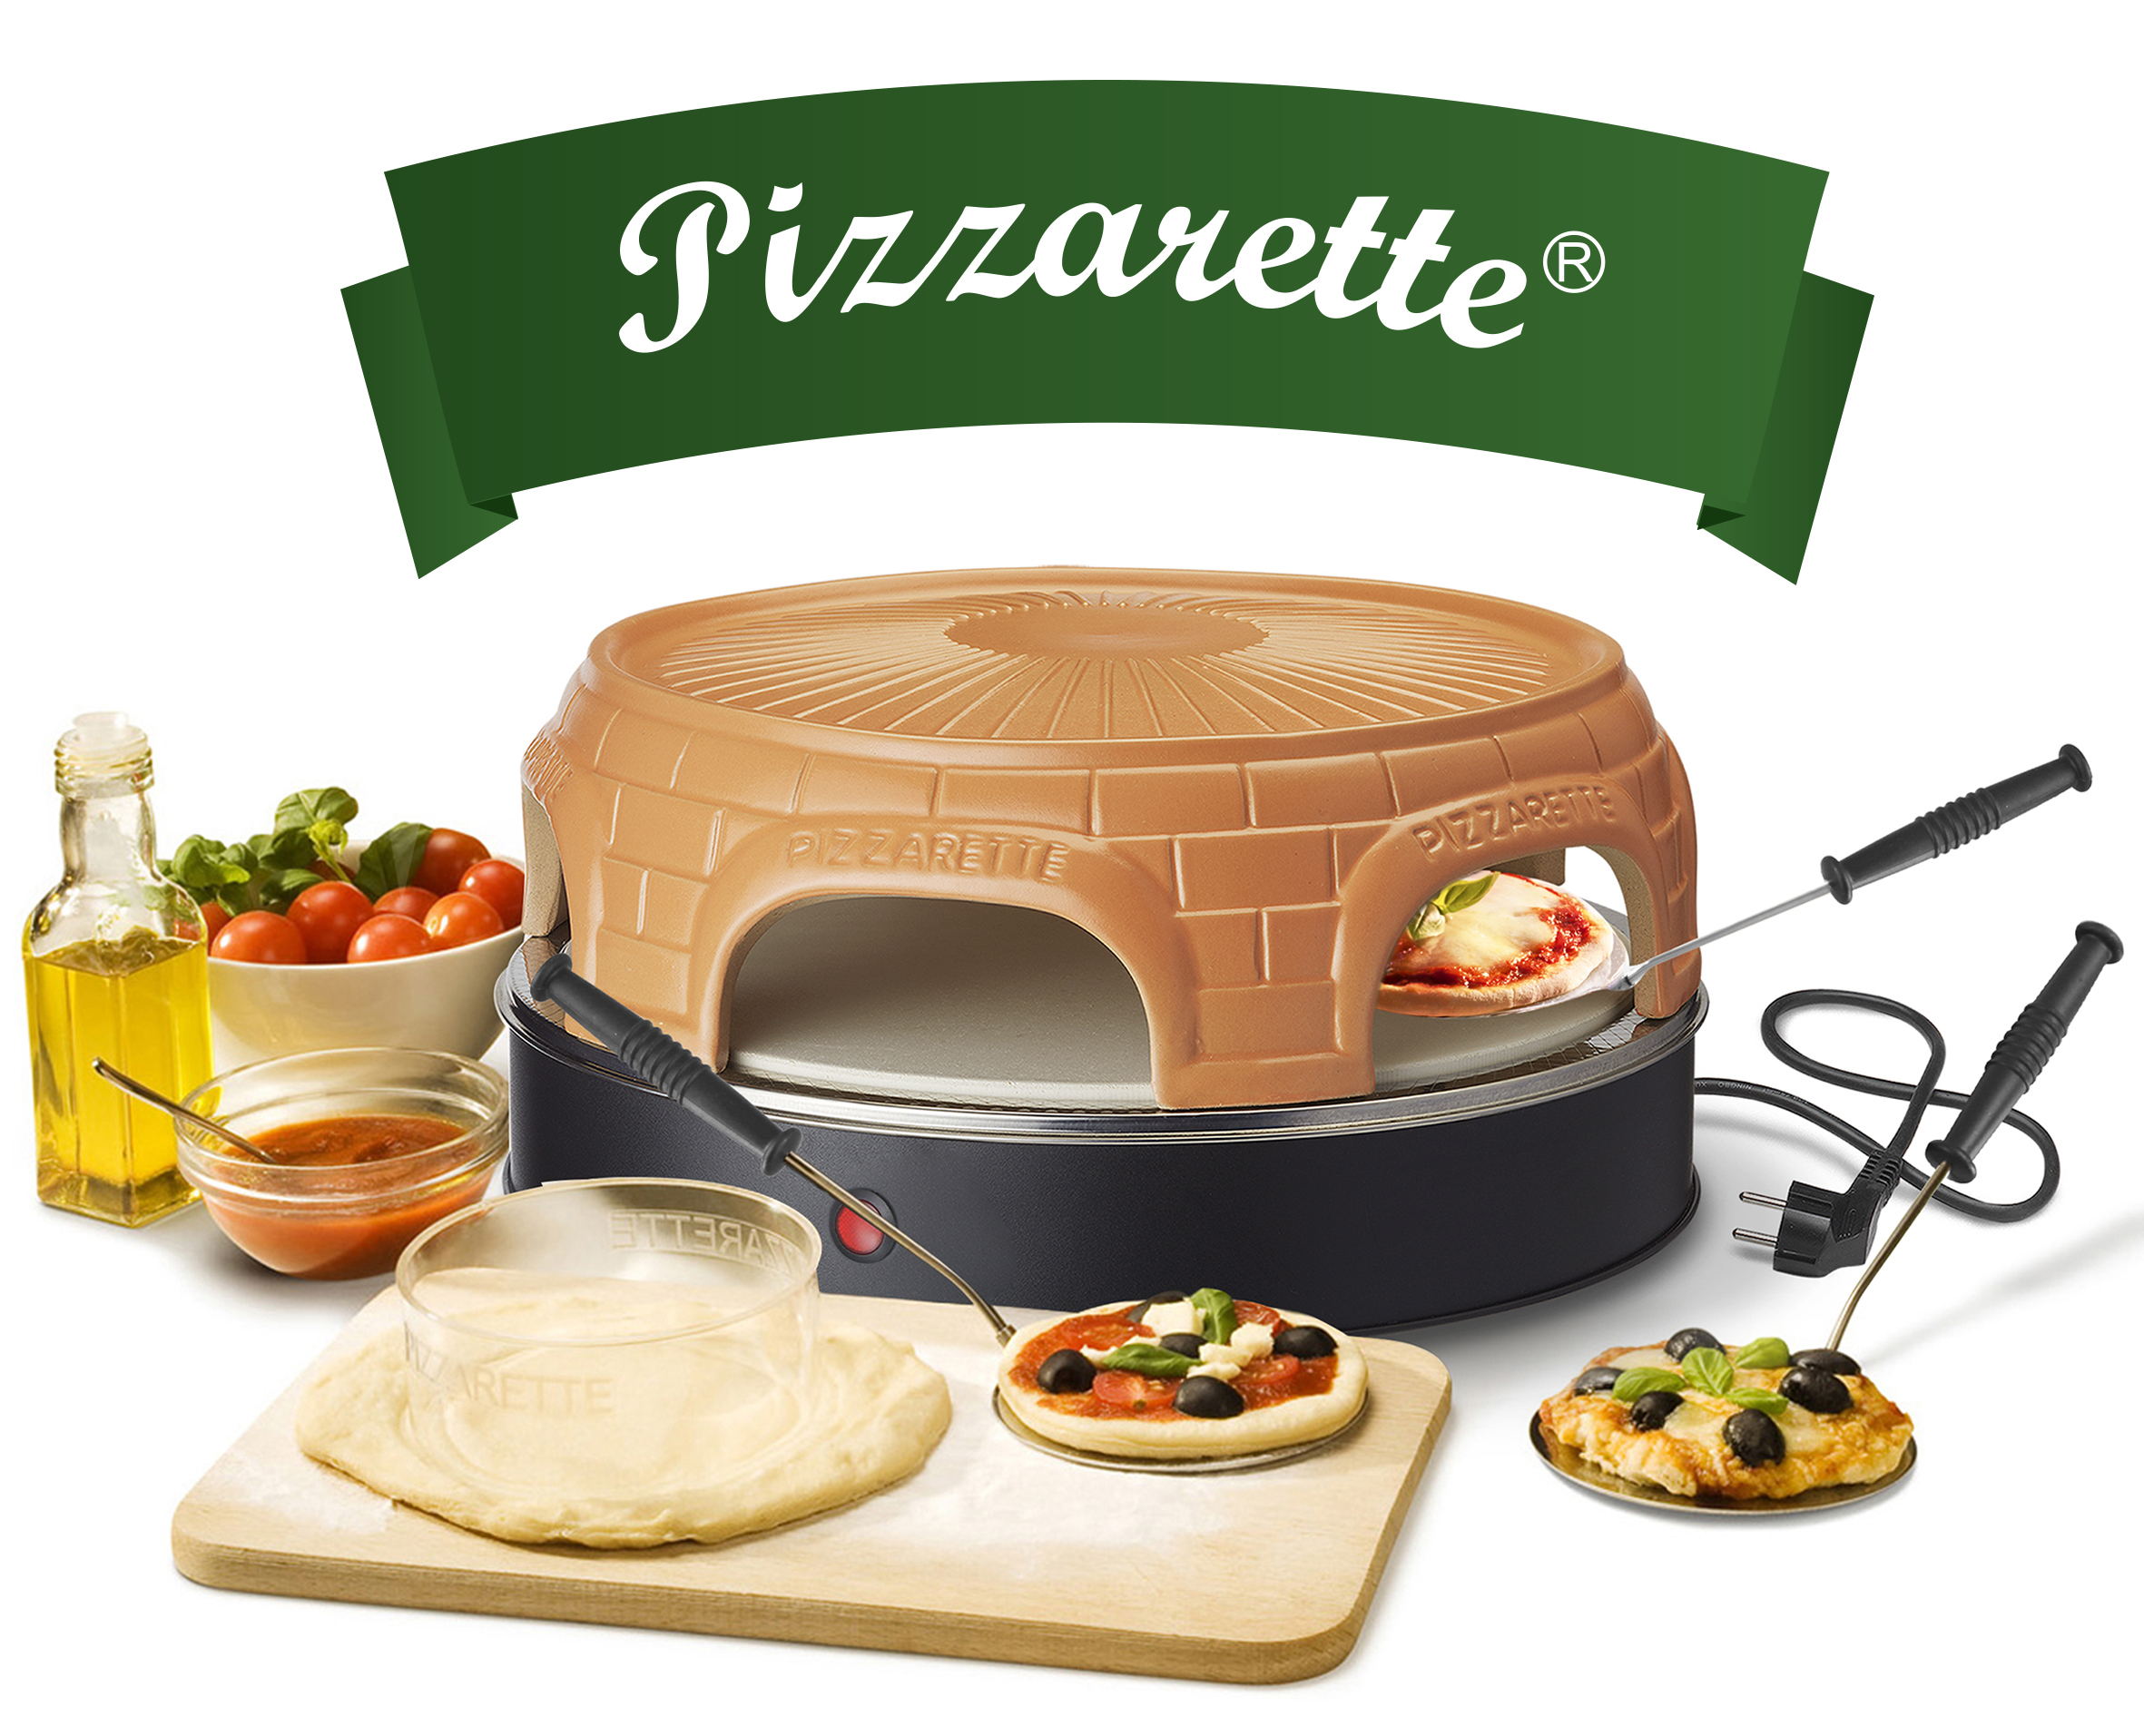 Pizzarette 6 Persoons.Pizzarette Stone Keep Warm 6 Persoons Po 116100